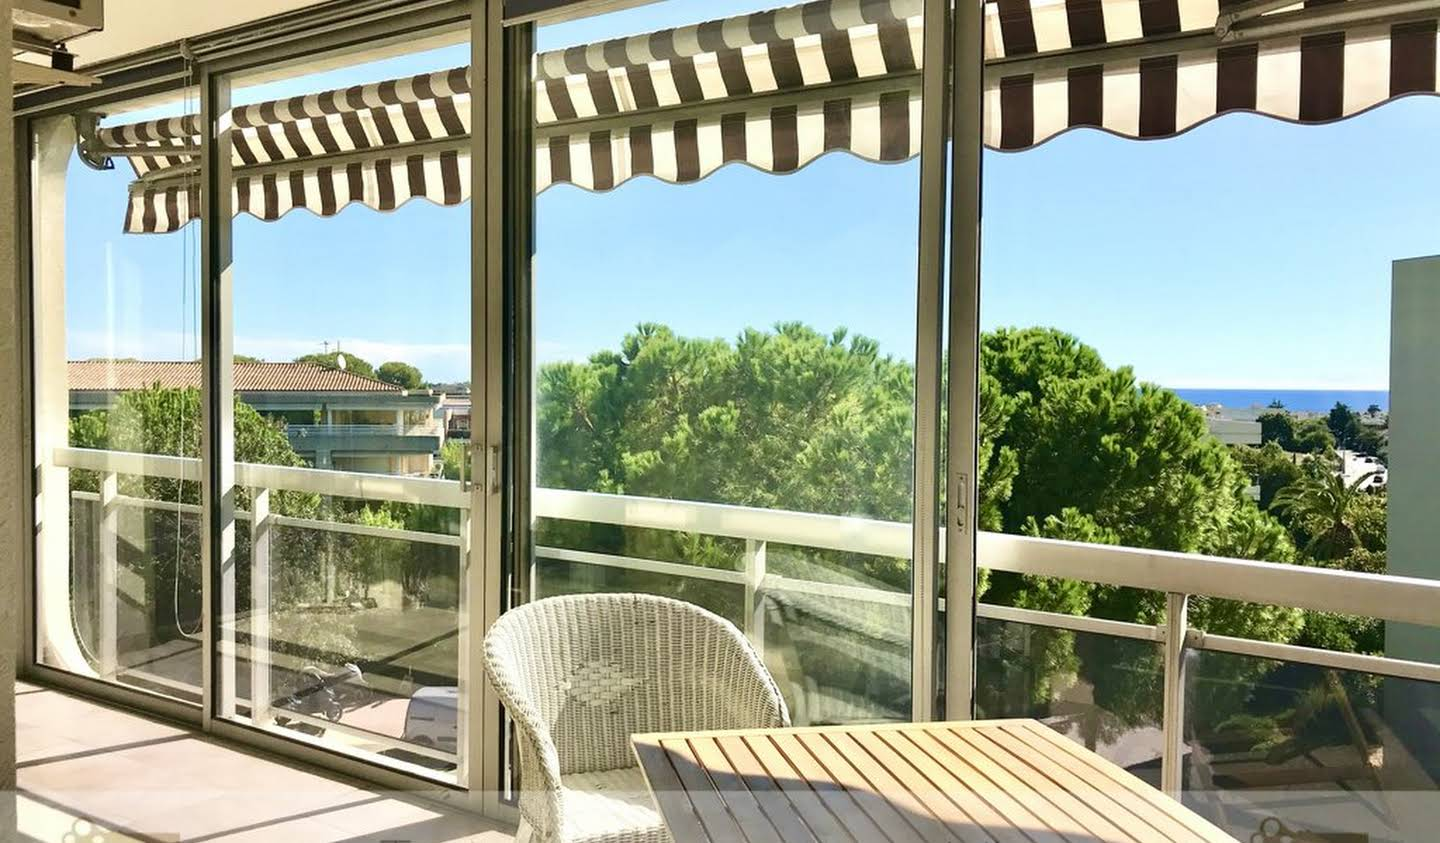 Apartment with terrace and pool Antibes